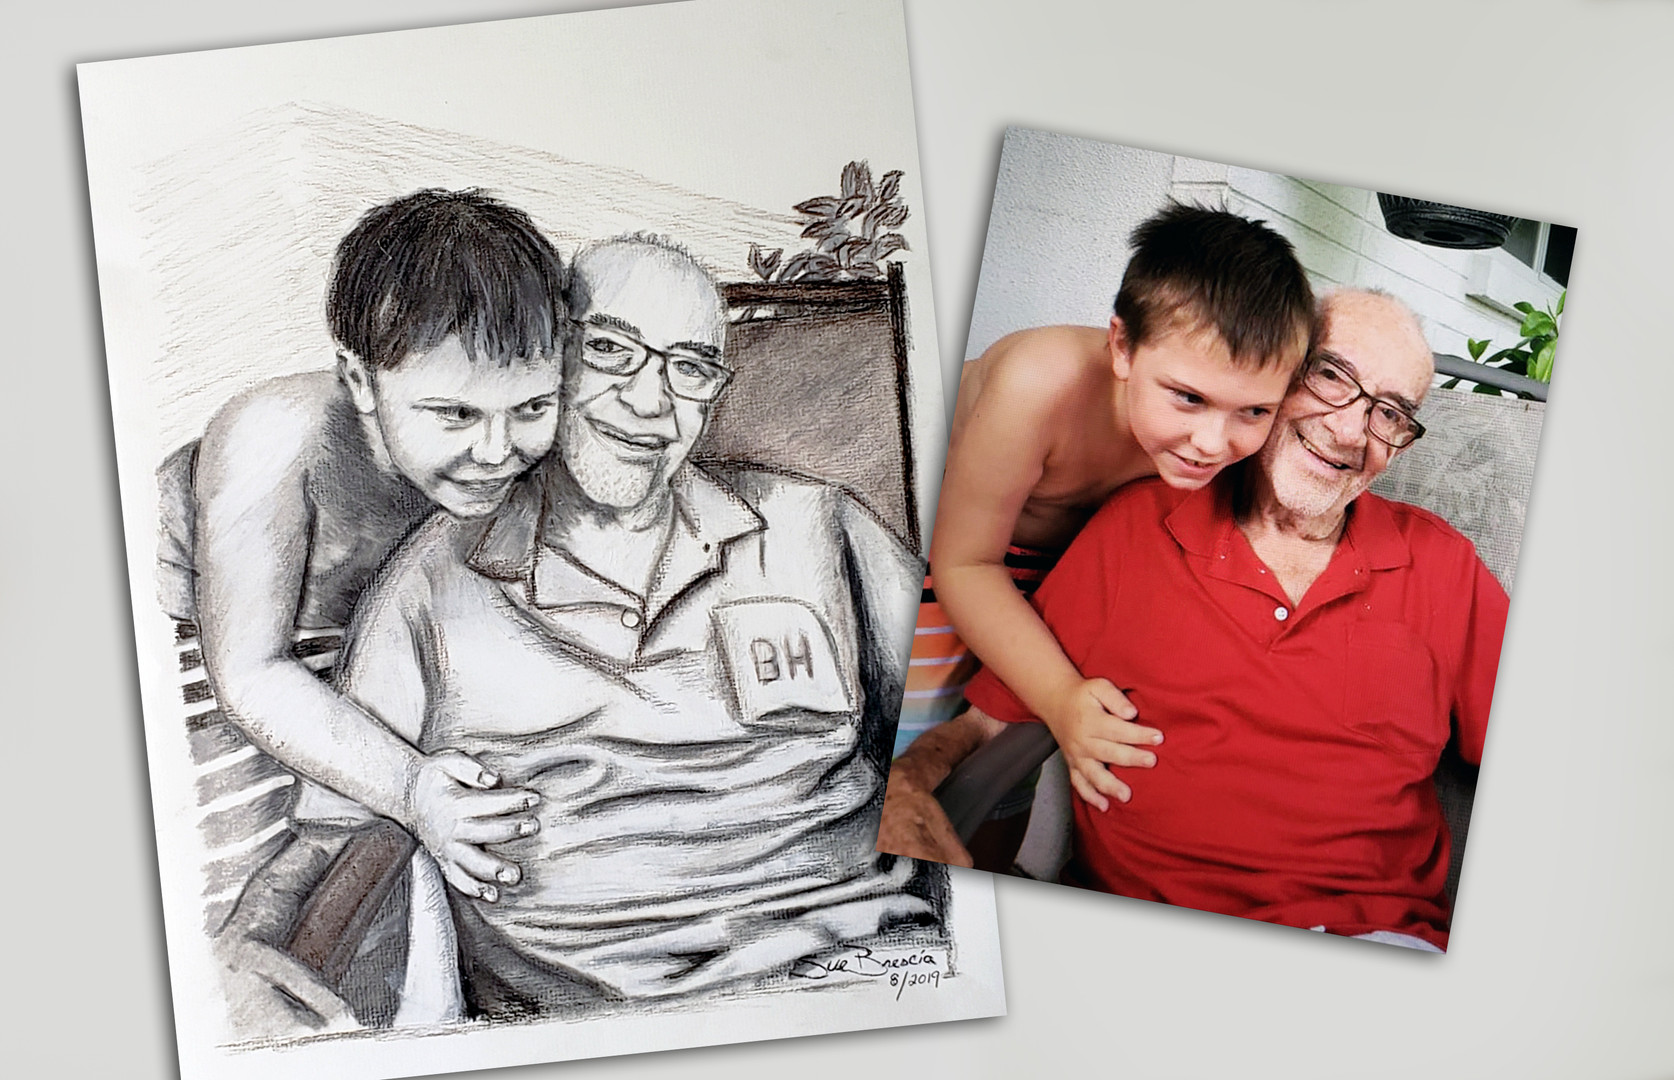 Charcoal of Grandfather, Grandson